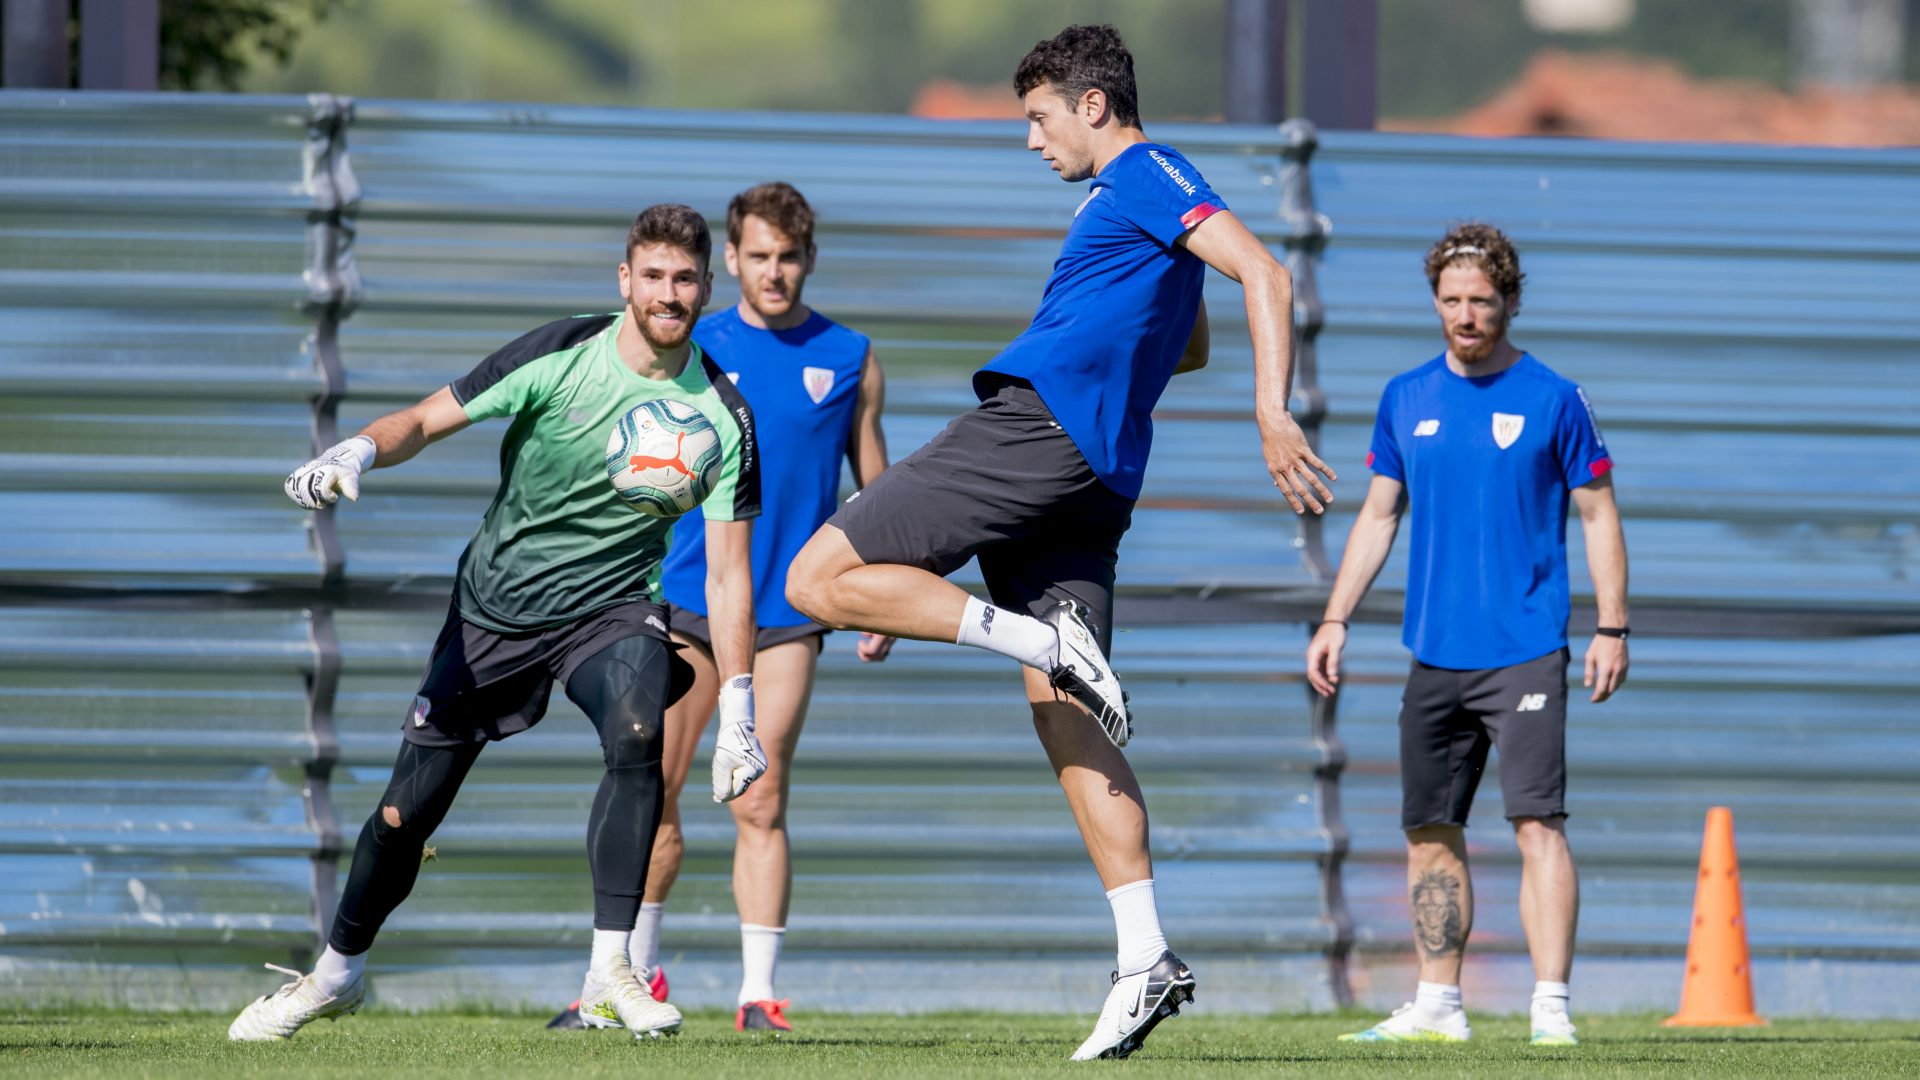 Athletic Club I Training session (05/28/2020)